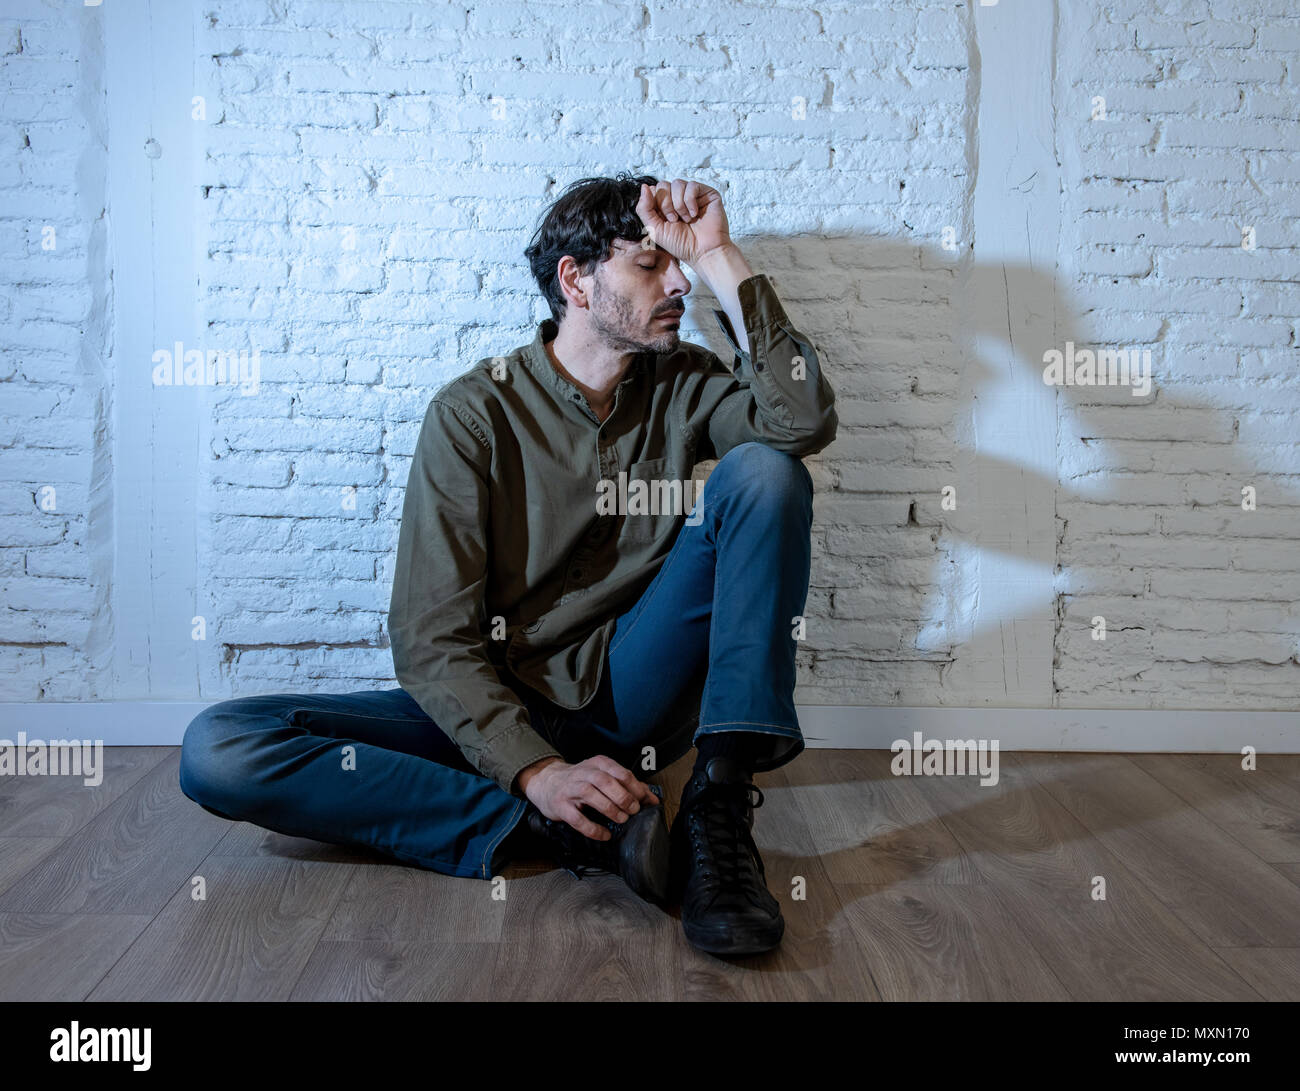 Young Depressed Man Sitting Against A White Wall At Home With A Shadow On The Wall Feeling Miserable Lonely And Sad In Mental Health Depression Conce Stock Photo Alamy